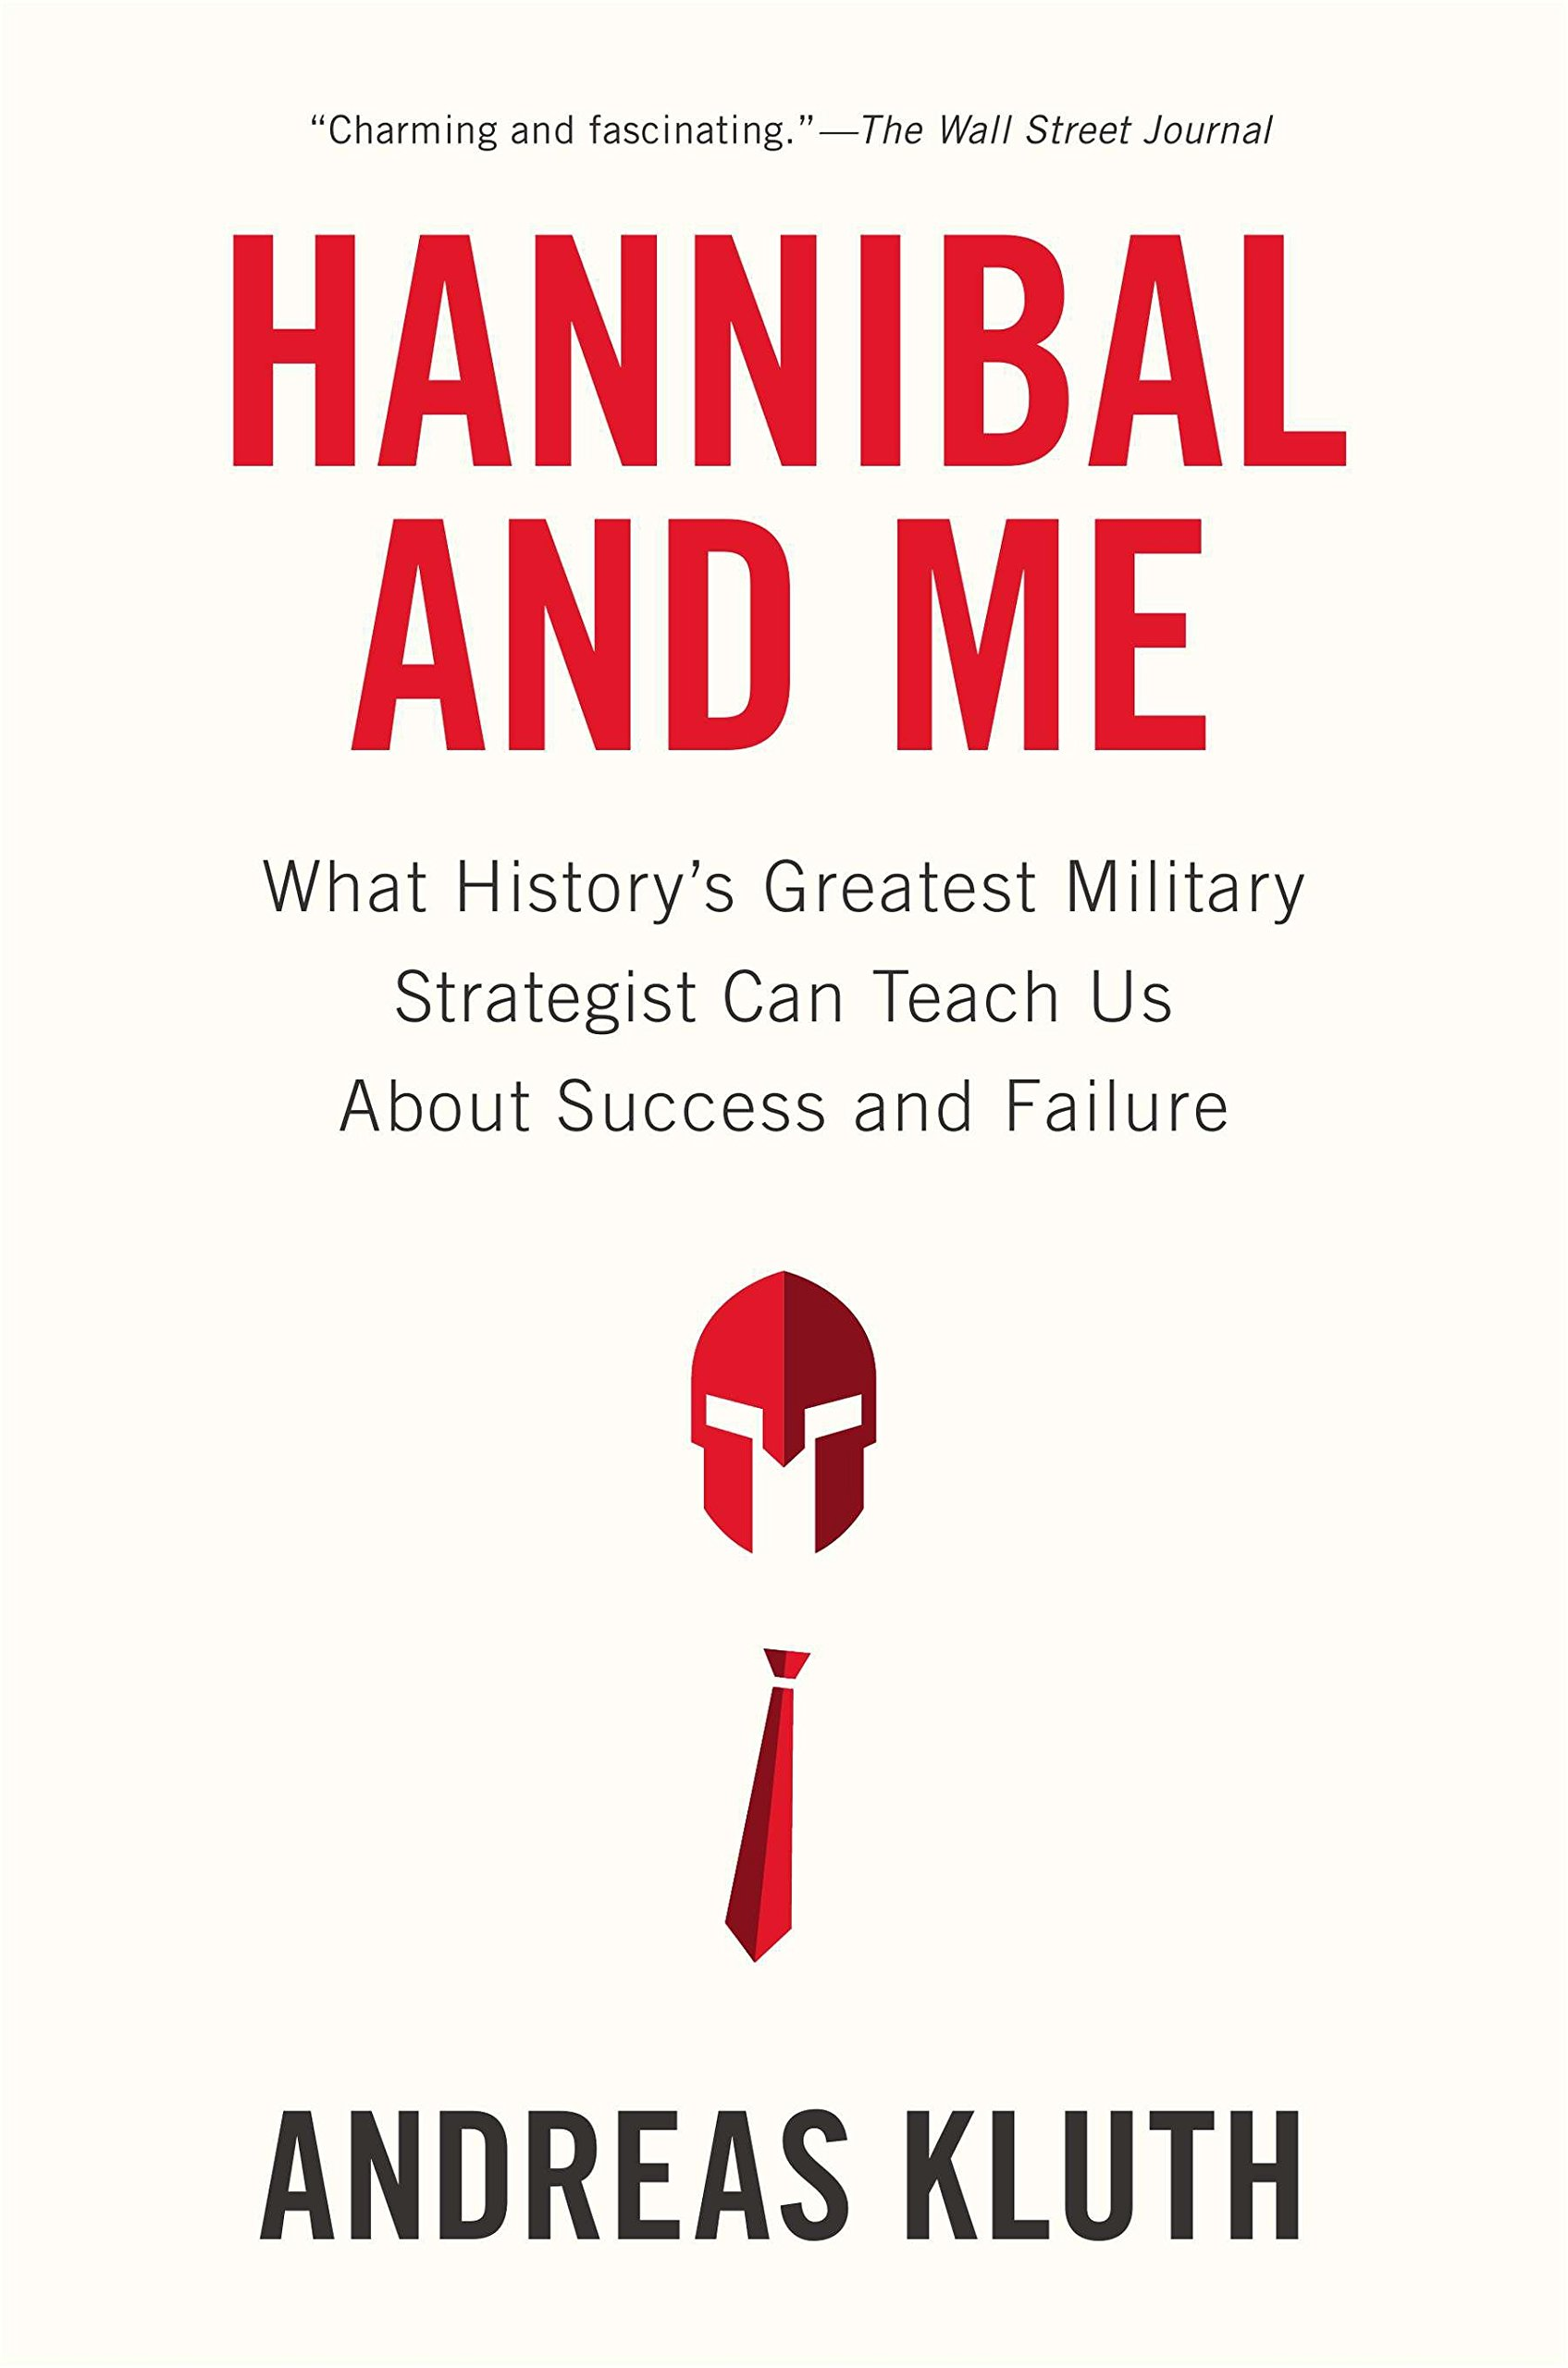 Hannibal and Me: What History's Greatest Military Strategist